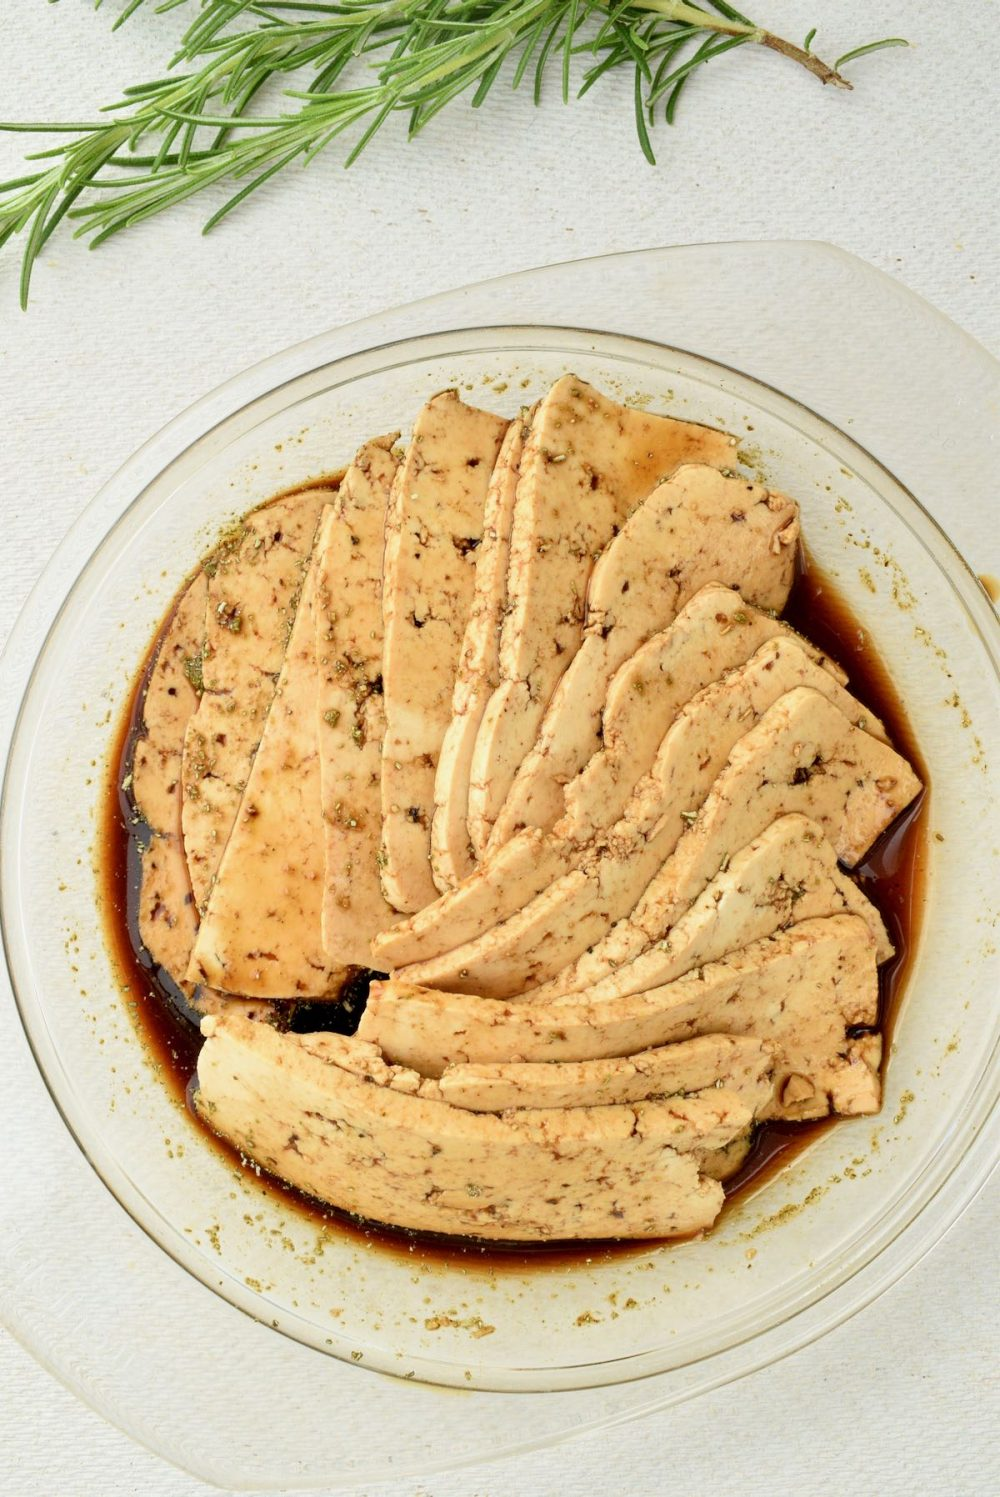 In a shallow glass dish, the tofu slices are fanned out and marinating in the dark brown liquid.